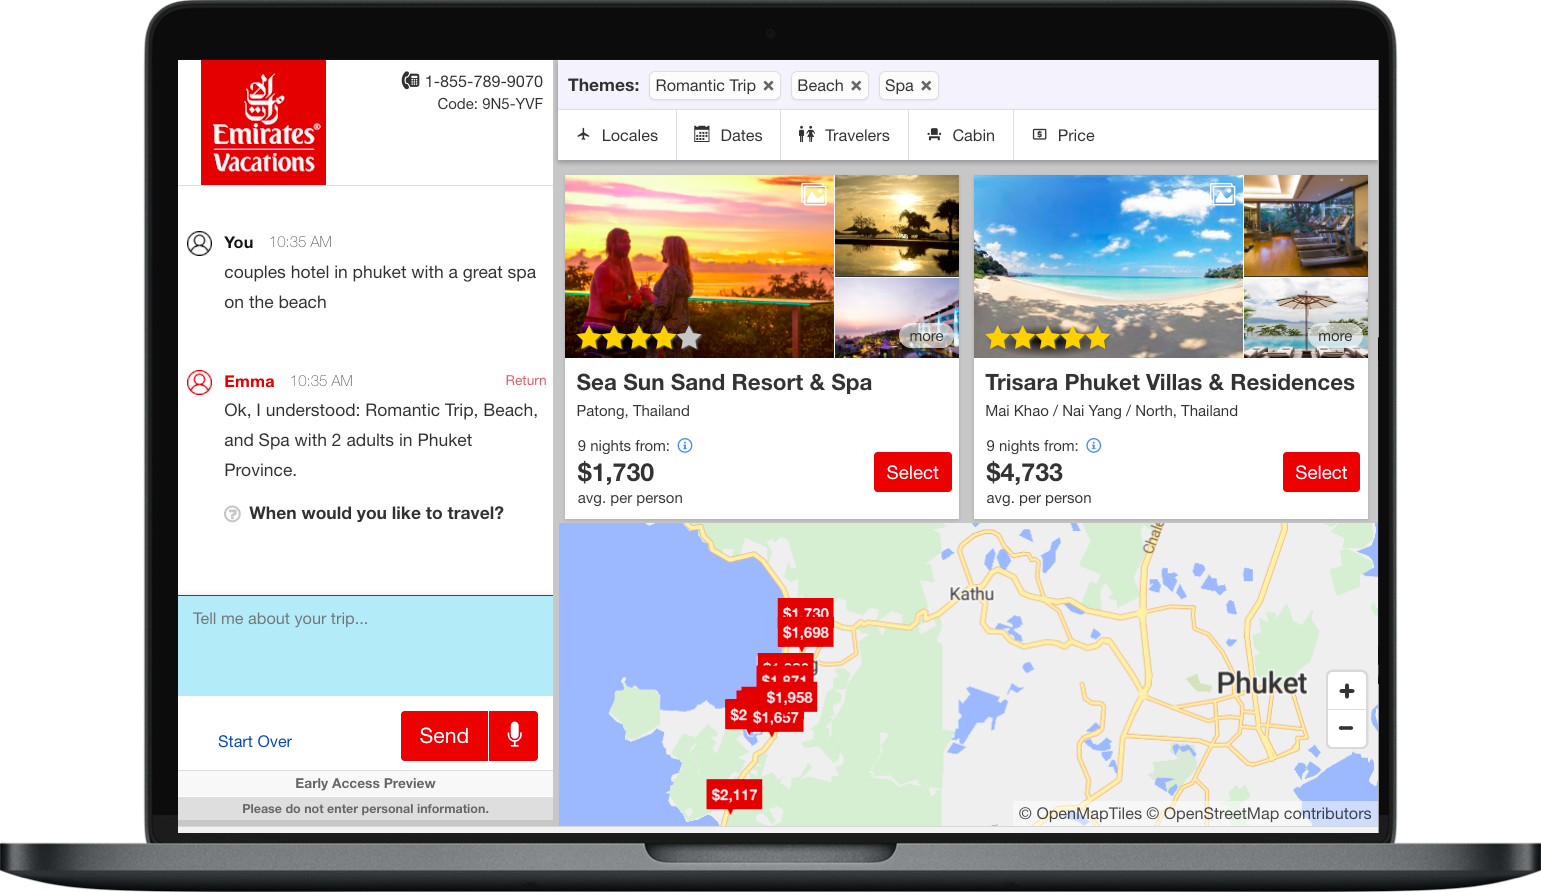 Emirates Vacations creates chat options on every page of their site to drive conversions